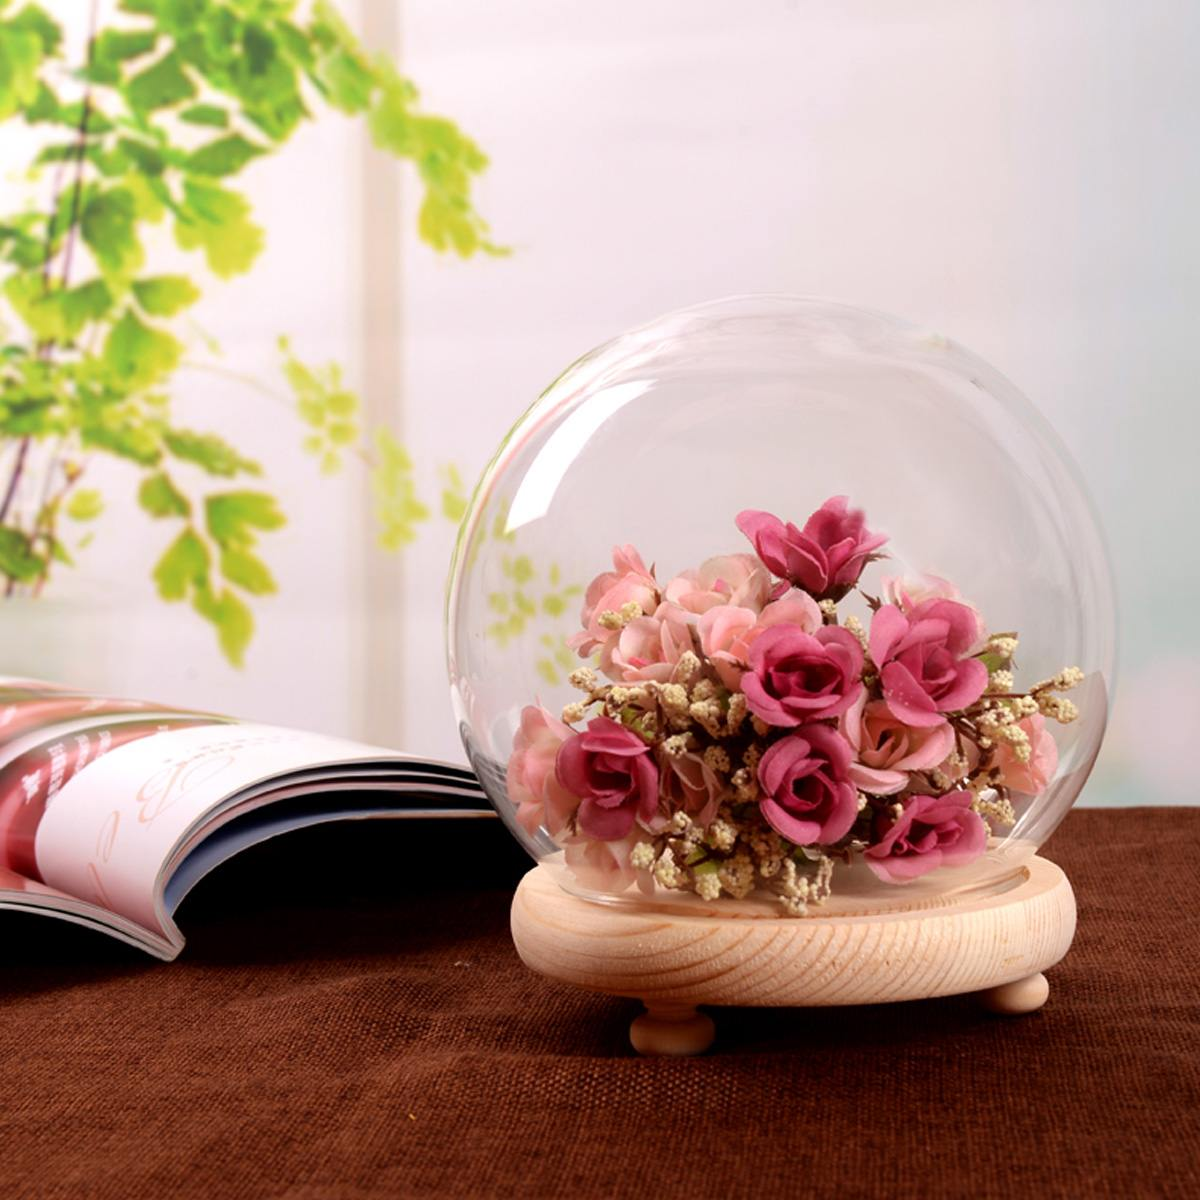 Glass Globe Display Dome Cover Cloche Bell Jar Dry Flower Vase with Wood Base Landcrape Figurines Model Display Home DecorationGlass Globe Display Dome Cover Cloche Bell Jar Dry Flower Vase with Wood Base Landcrape Figurines Model Display Home Decoration